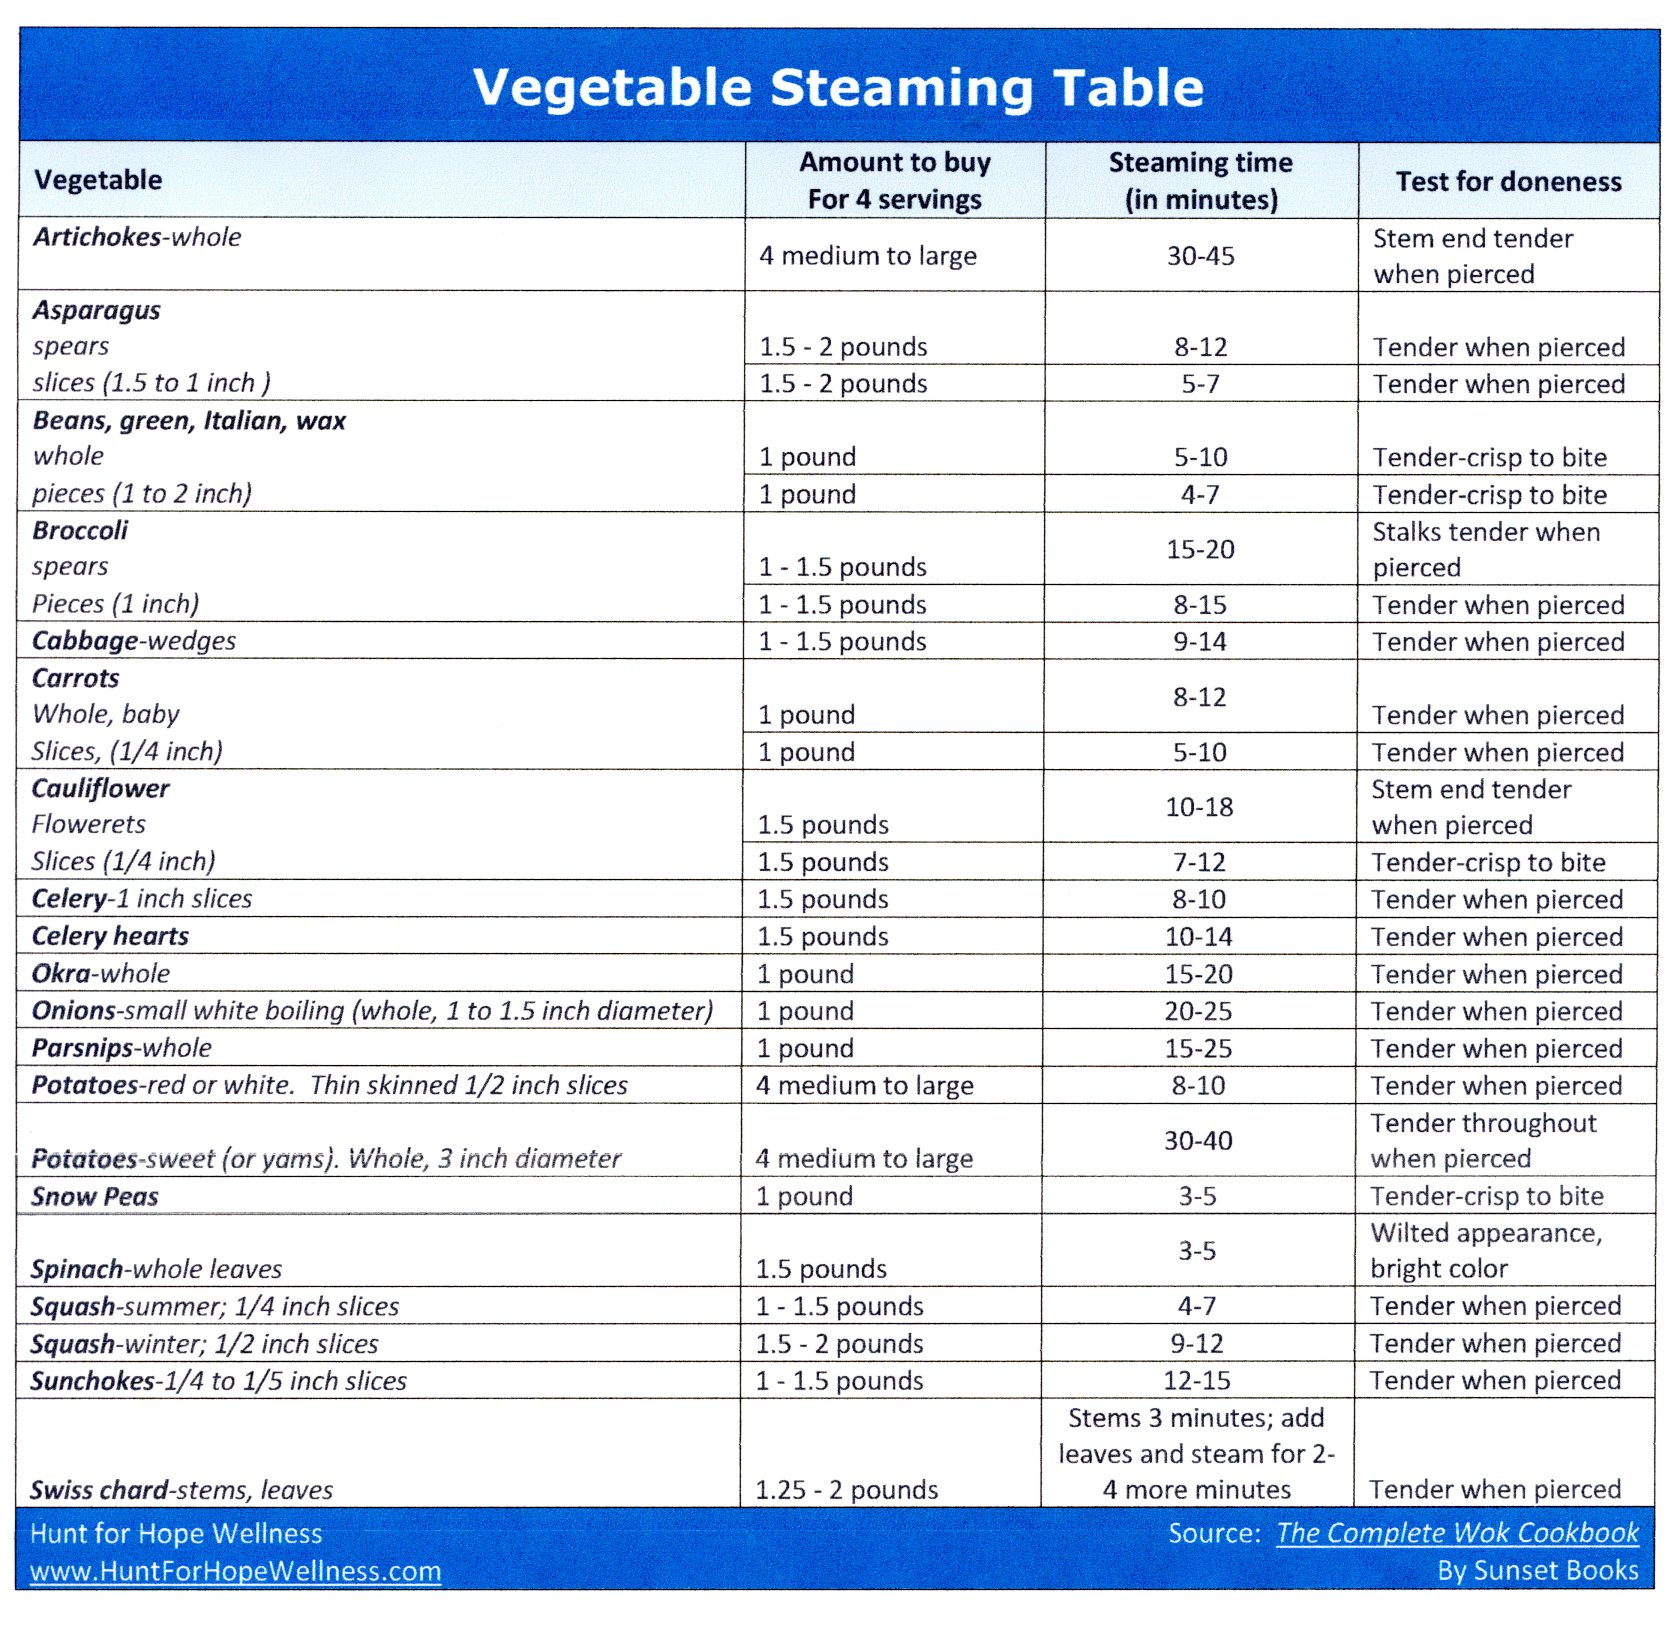 Time Table for Perfect Ve able Steaming Hunt for Hope Wellness